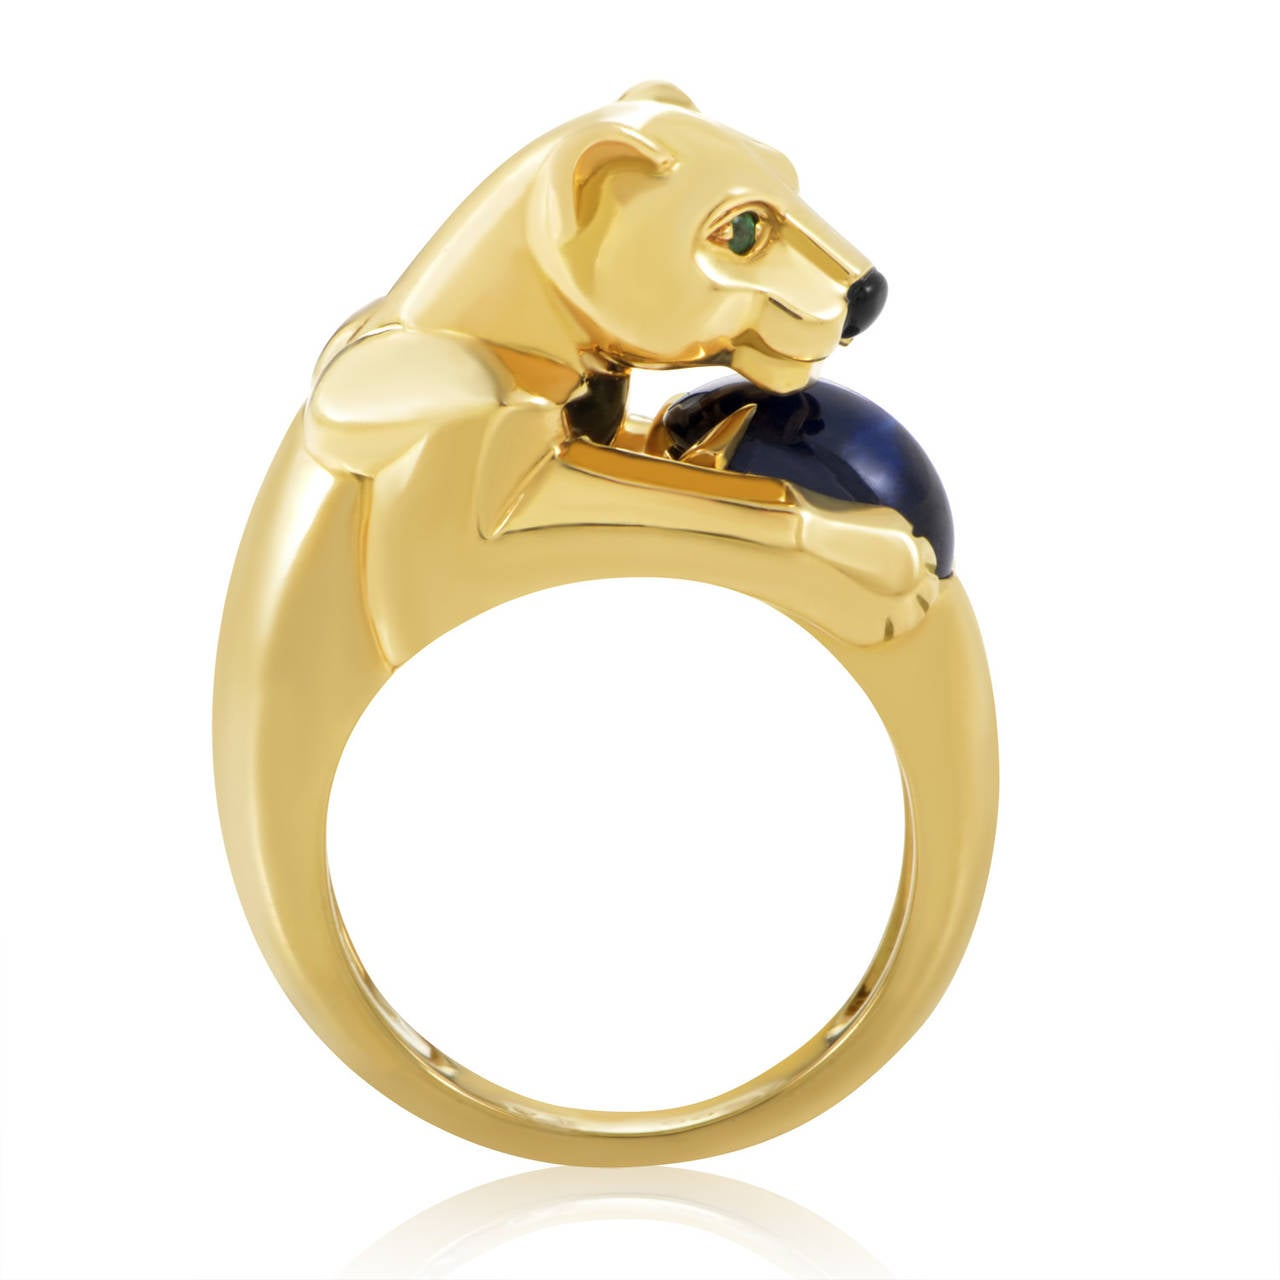 Cartier Panthere Sapphire Gold Ring 2